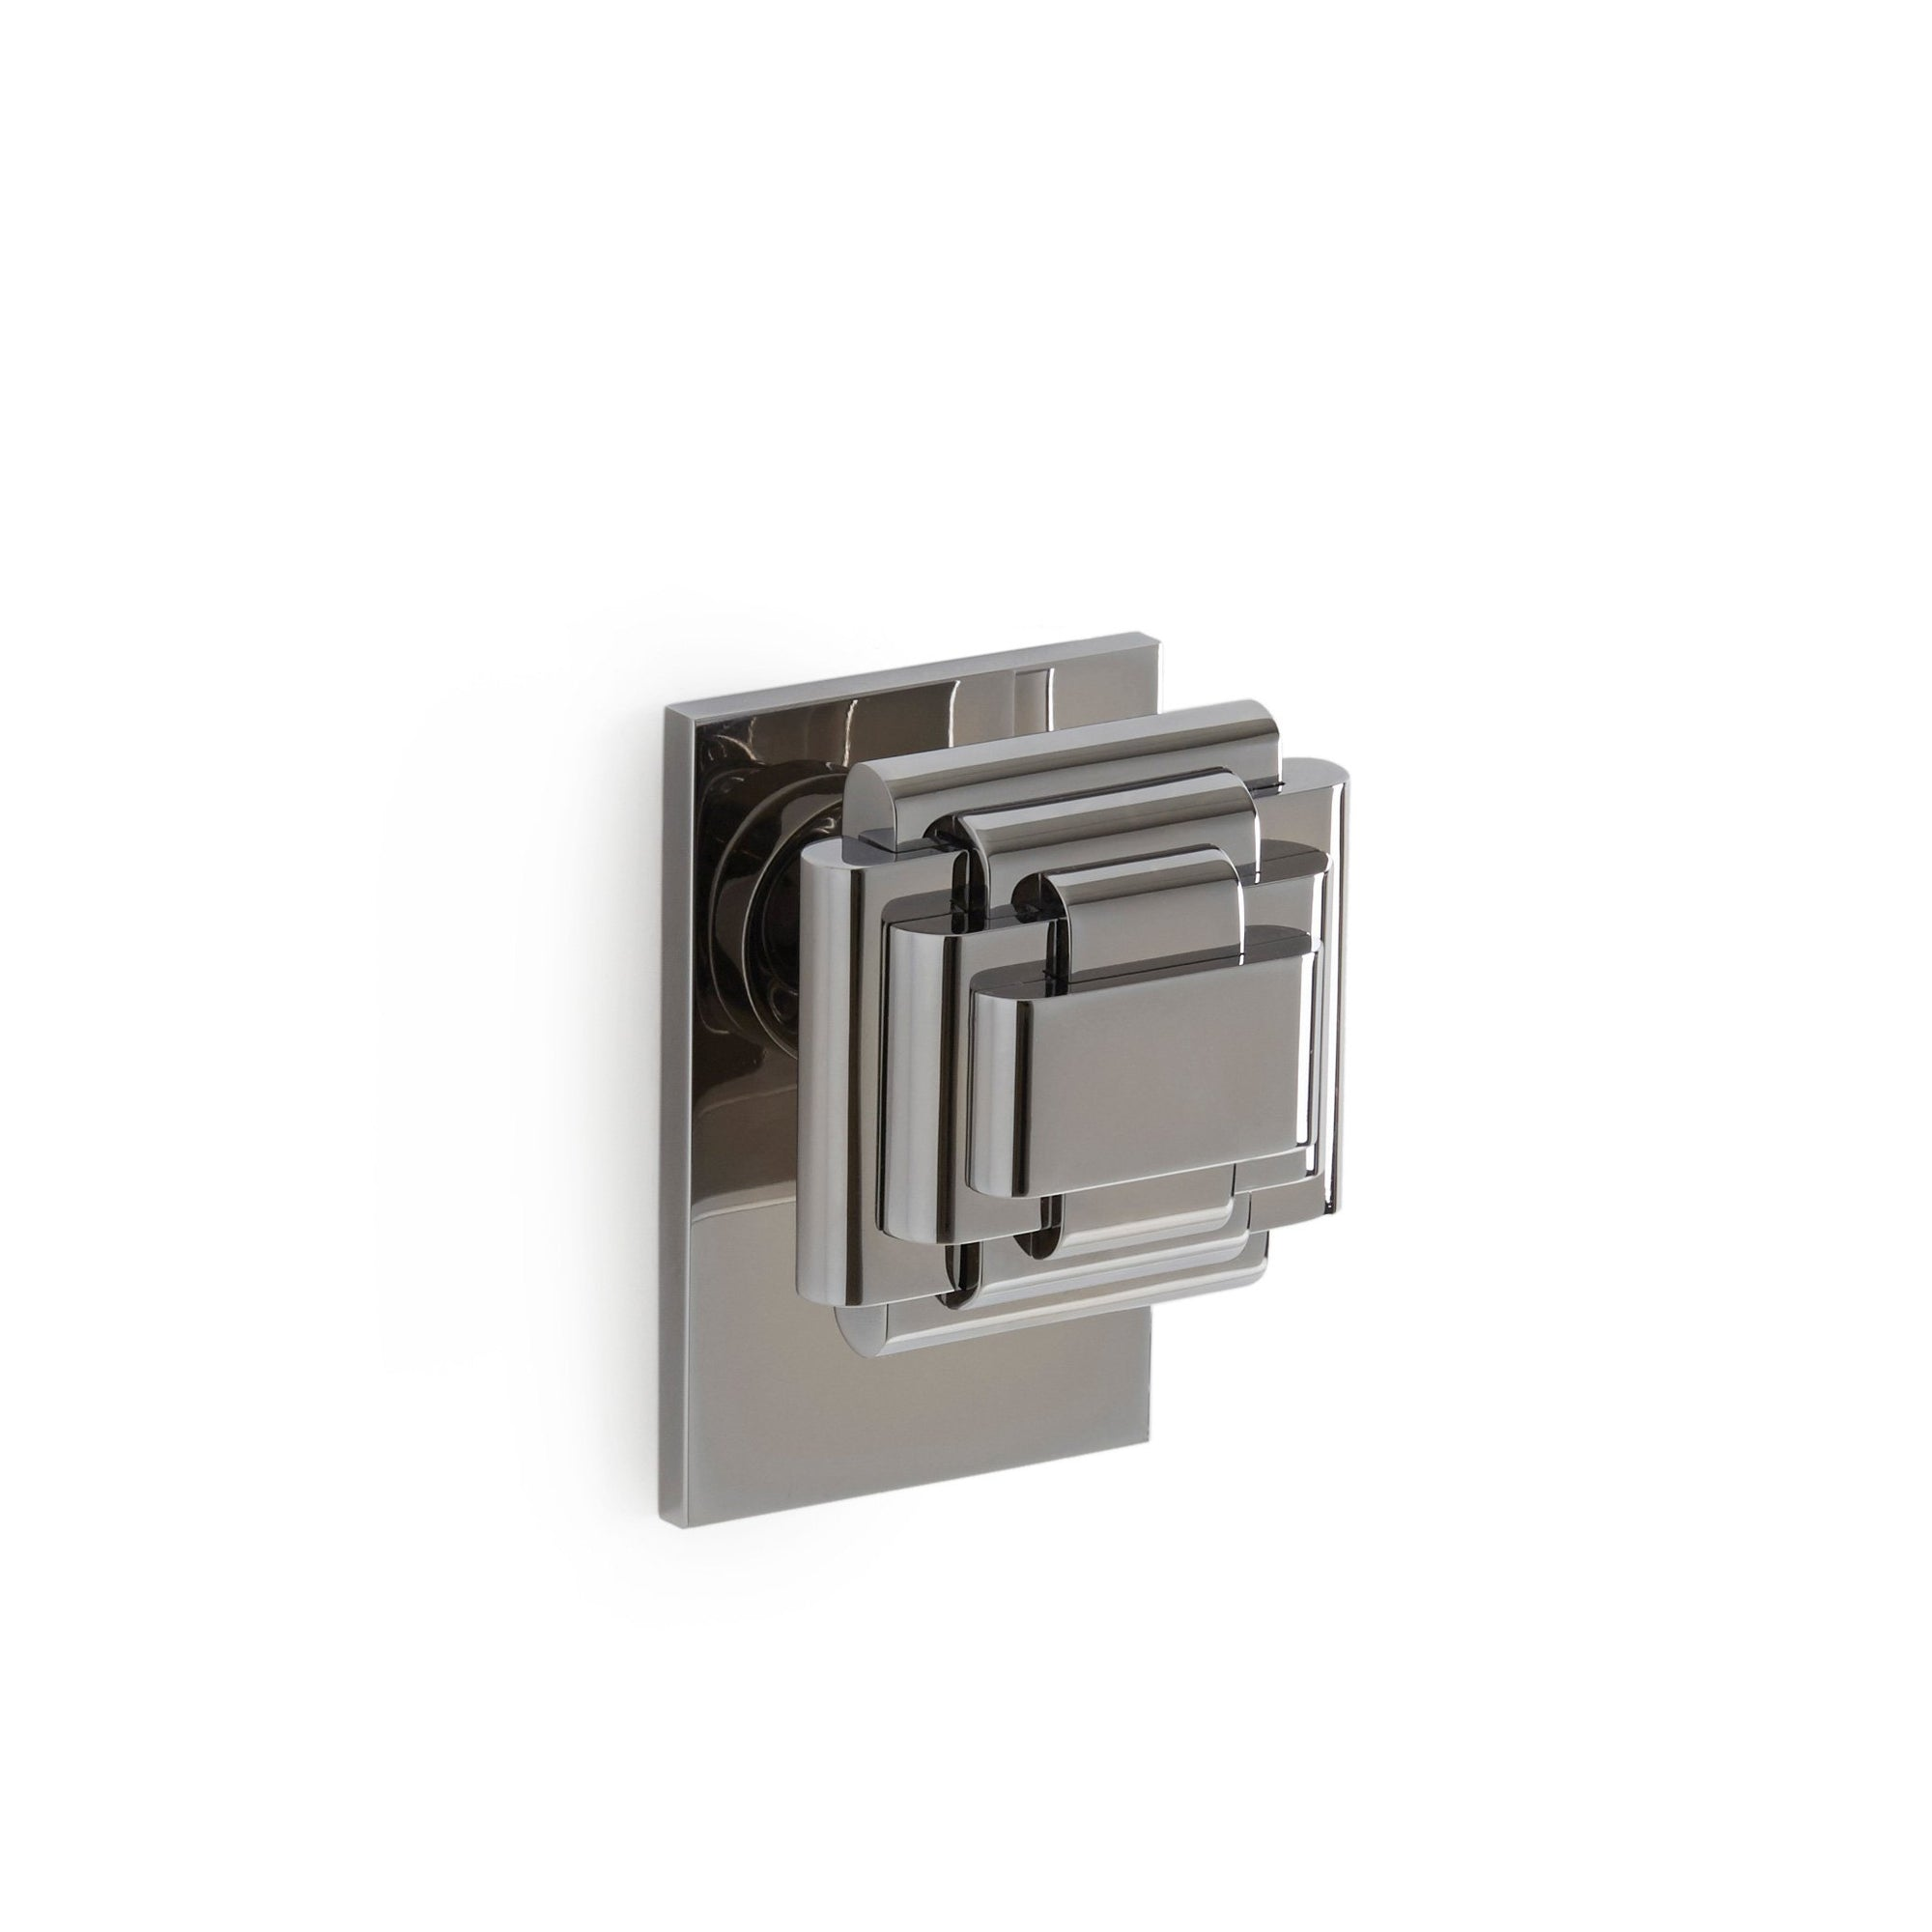 2015DOR-CP Sherle Wagner International Nouveau Door Knob in Polished Chrome metal finish